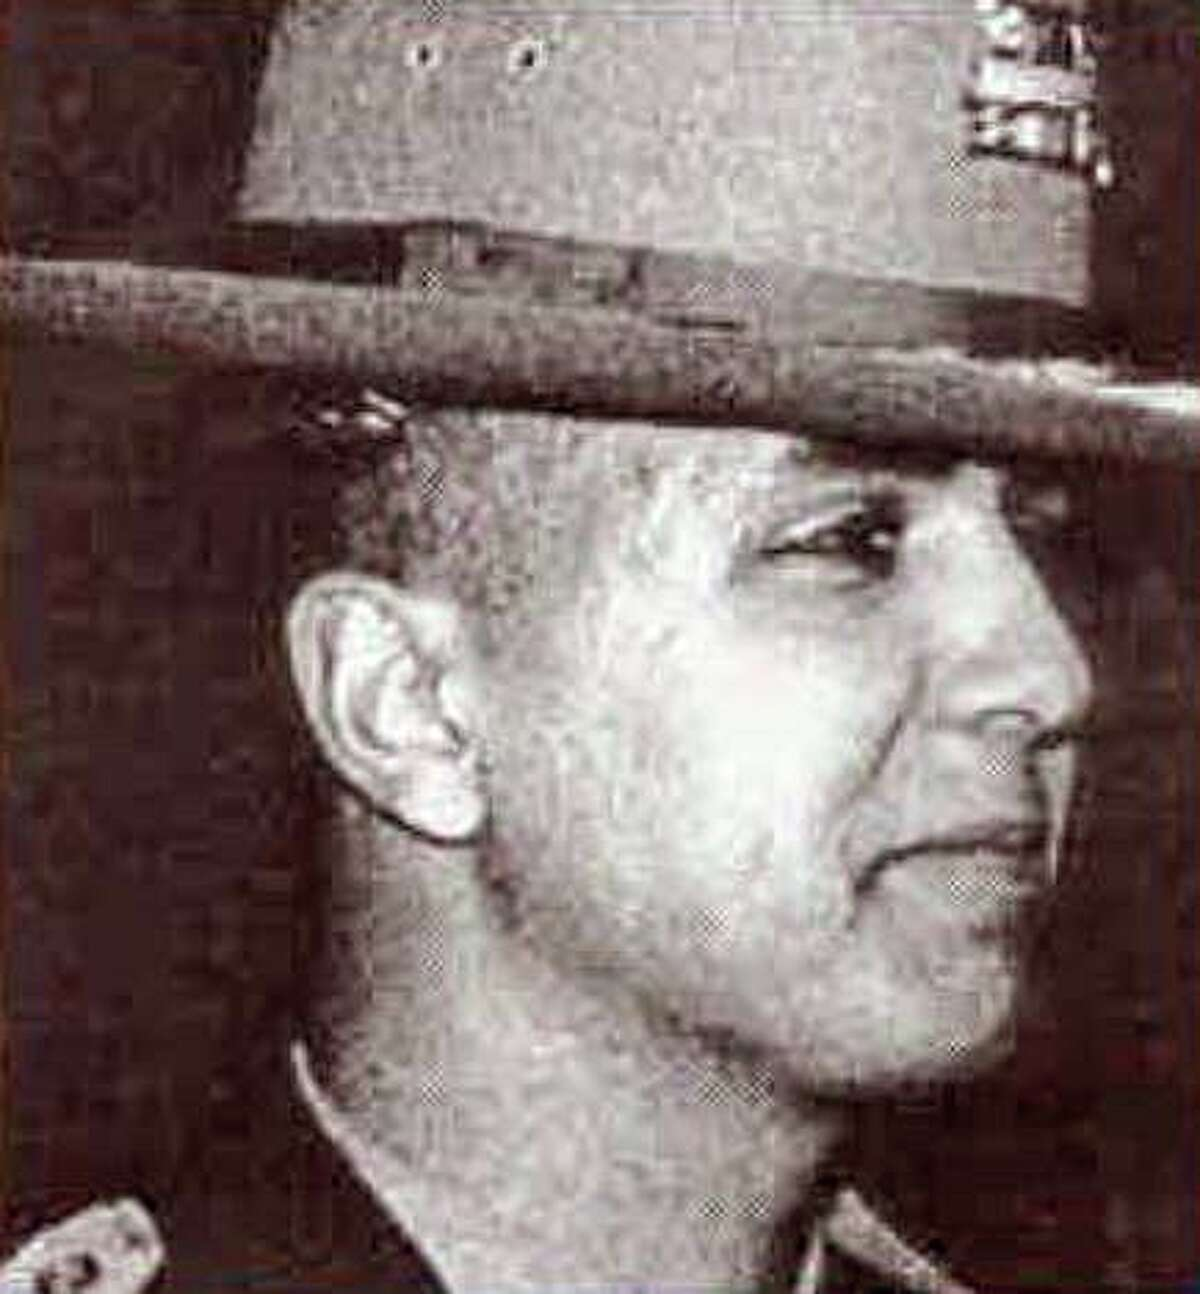 Thirty years ago today, a Connecticut state trooper was struck and killed on I-95 in Greenwich. Trooper Jorge Agosto, who was 27 years old, was working on one of the busiest traffic days of the year - the day before Thanksgiving - Wednesday, Nov. 22, 1989.